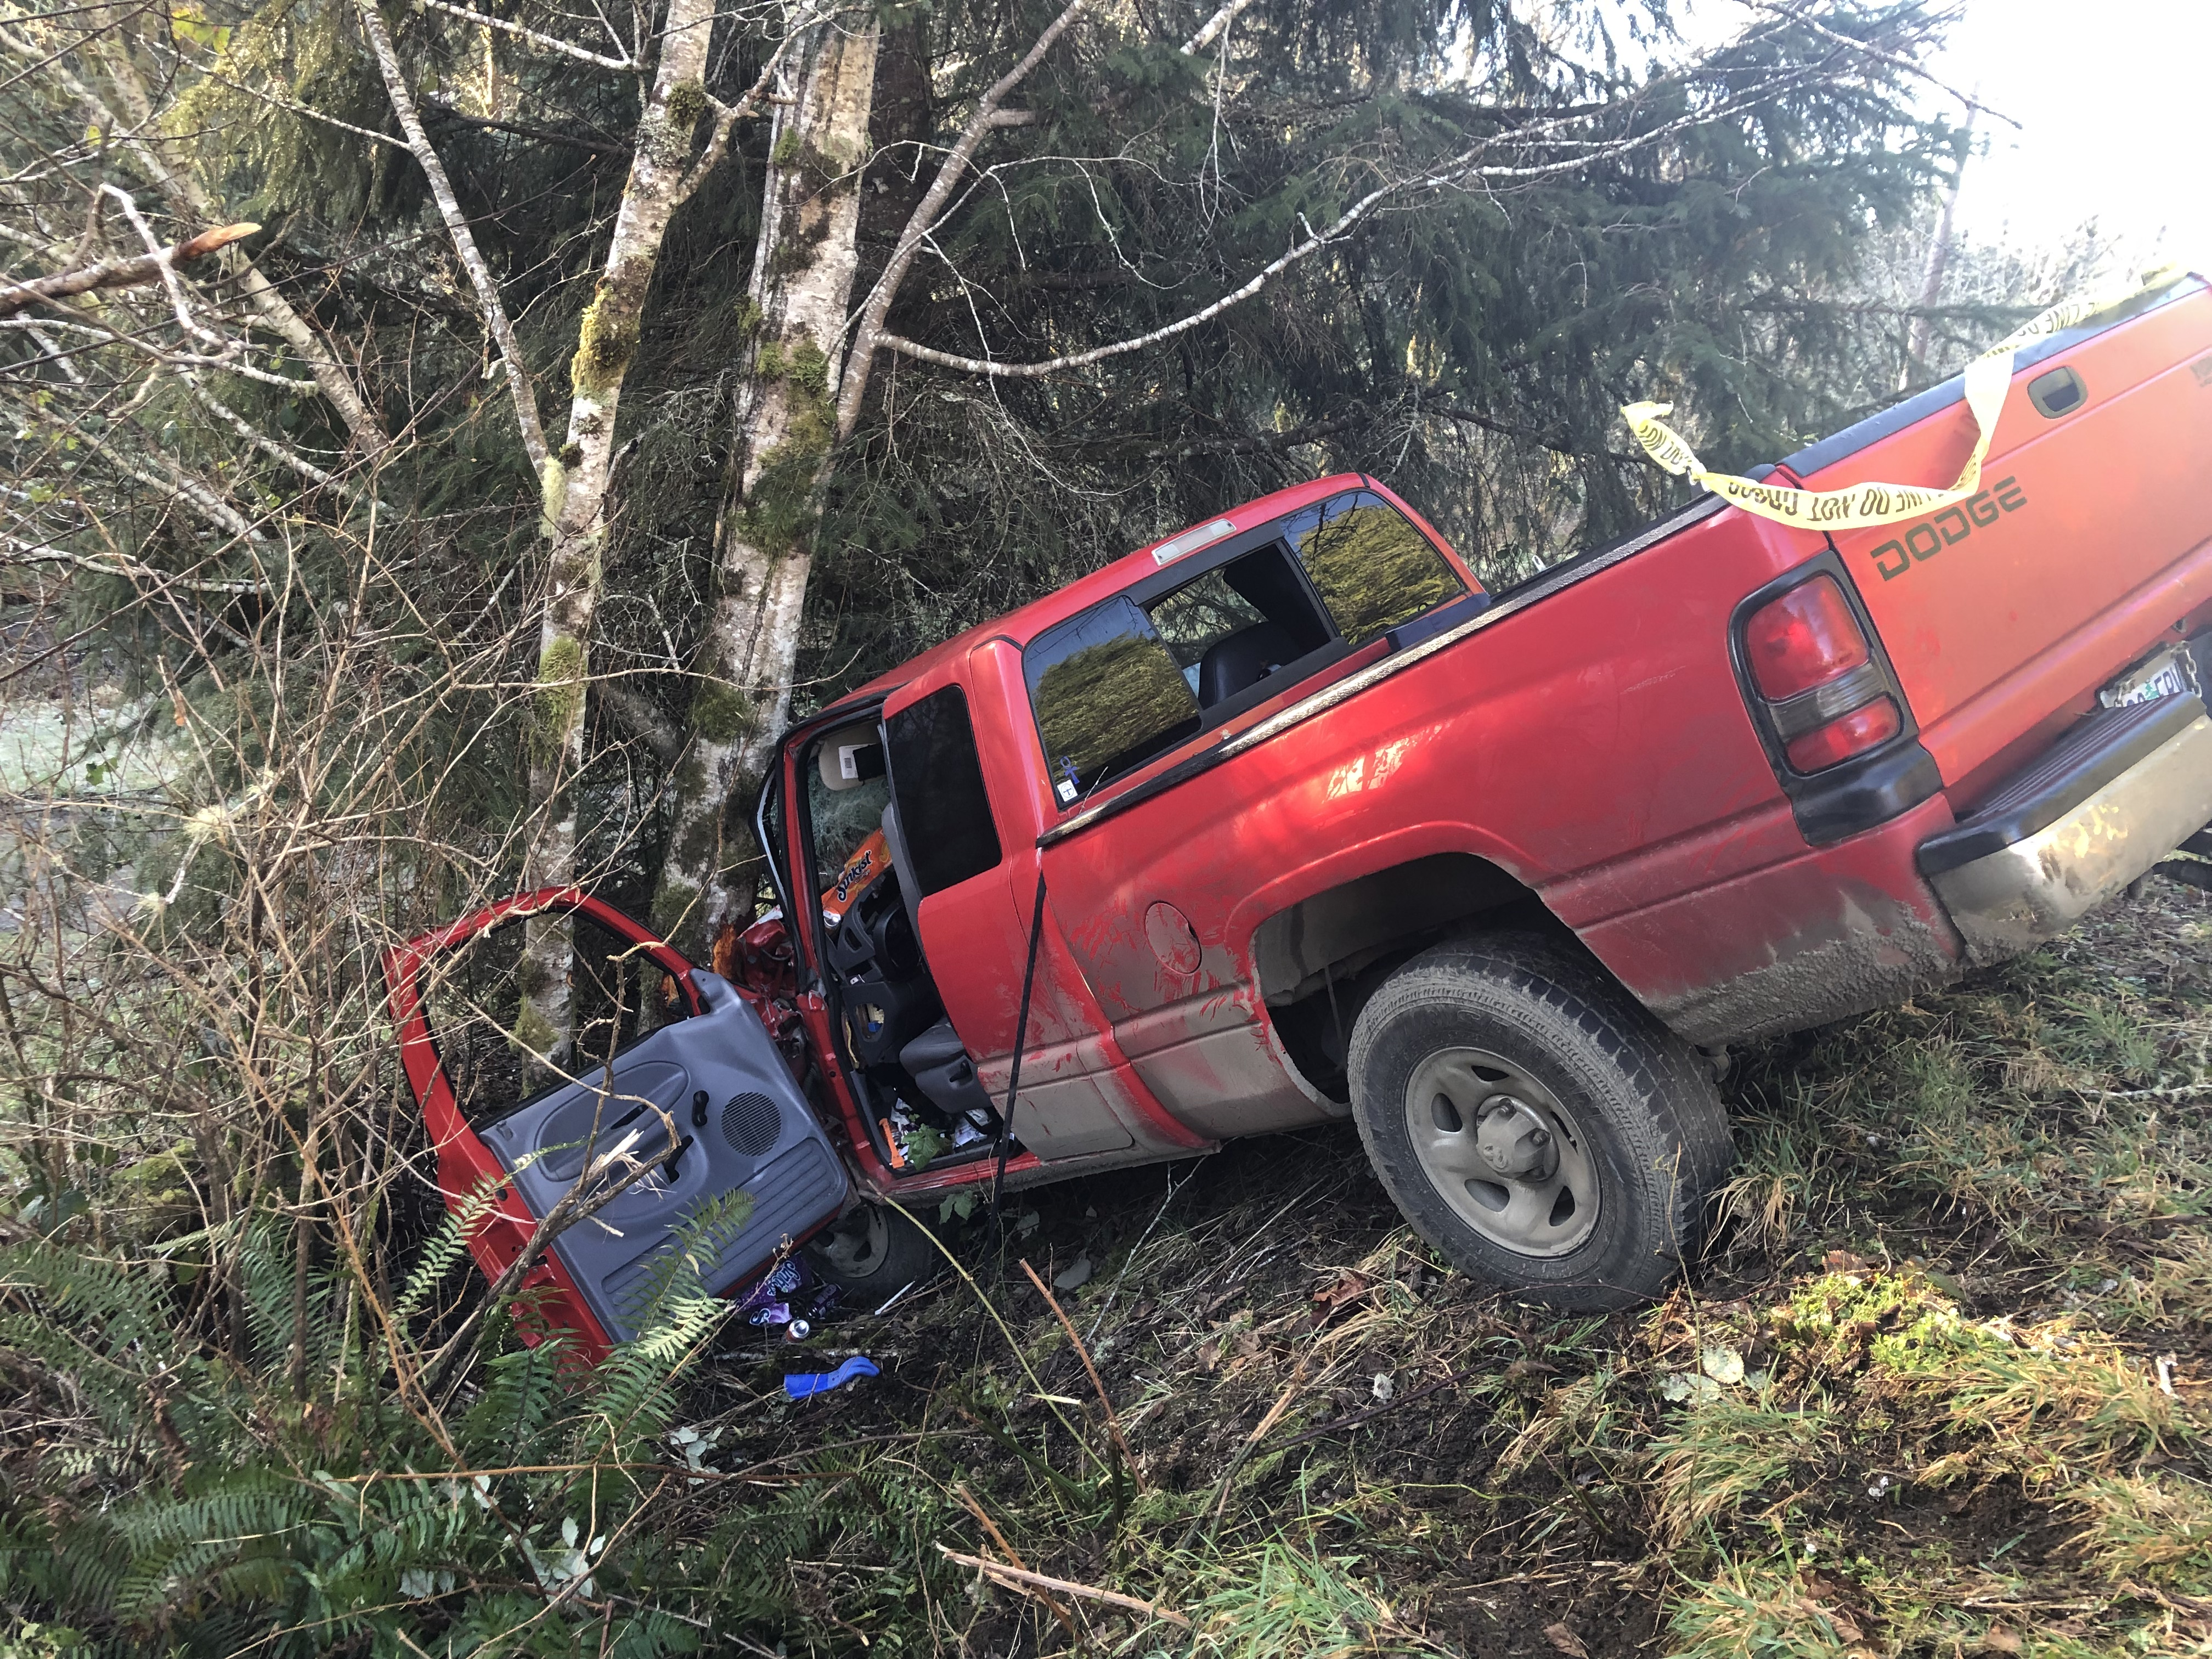 Schooner Creek Crash